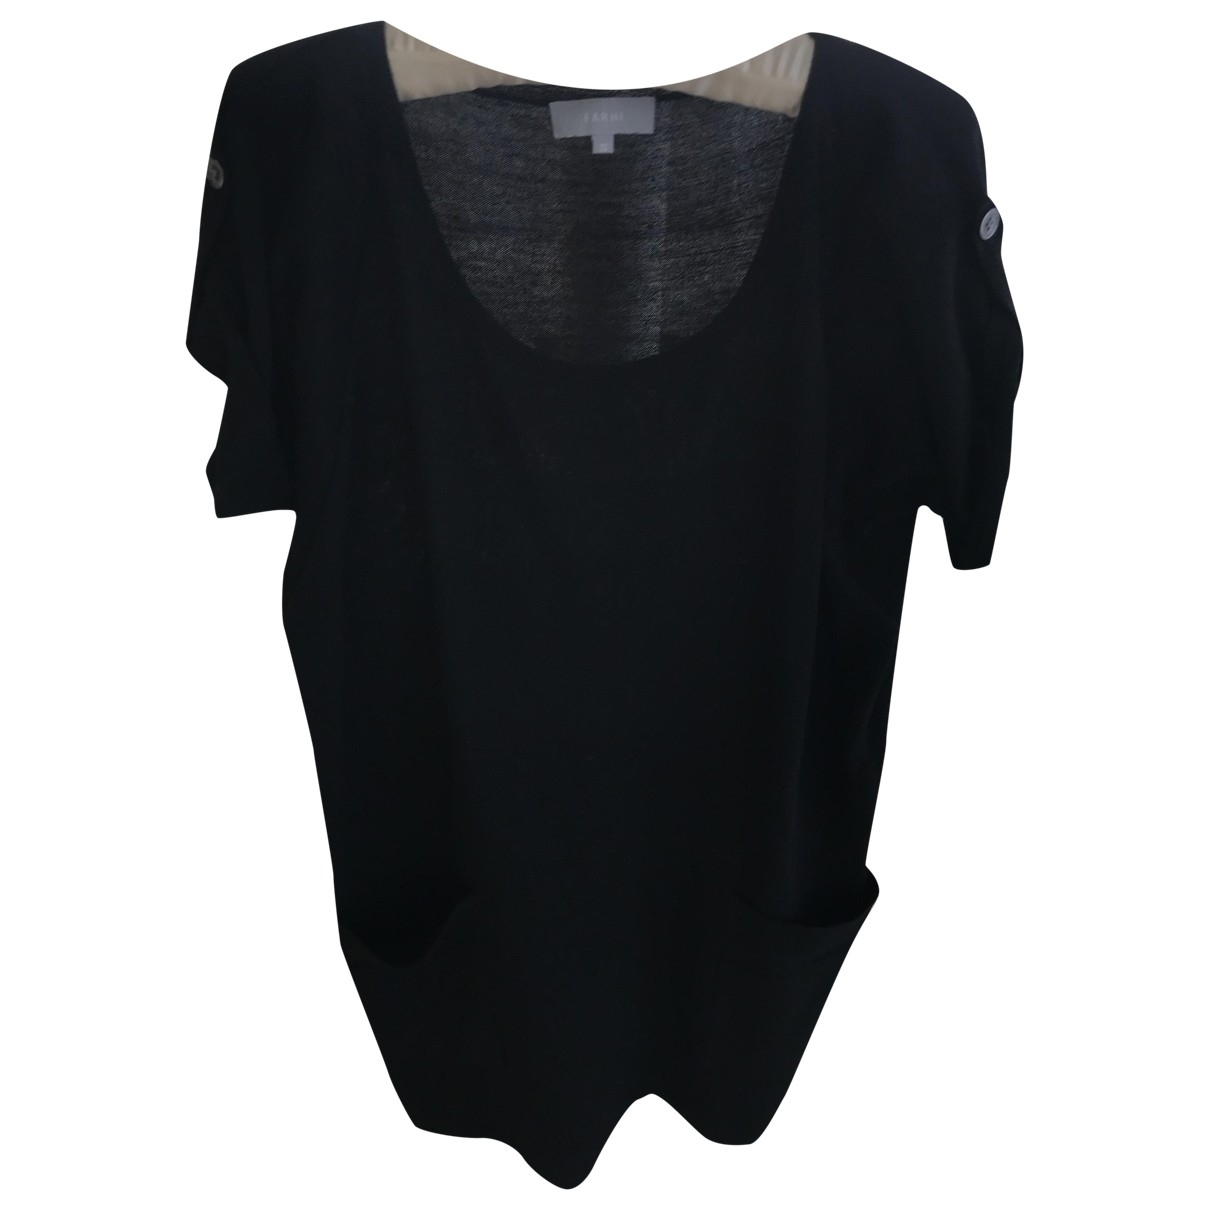 Nicole Farhi \N Black  top for Women S International